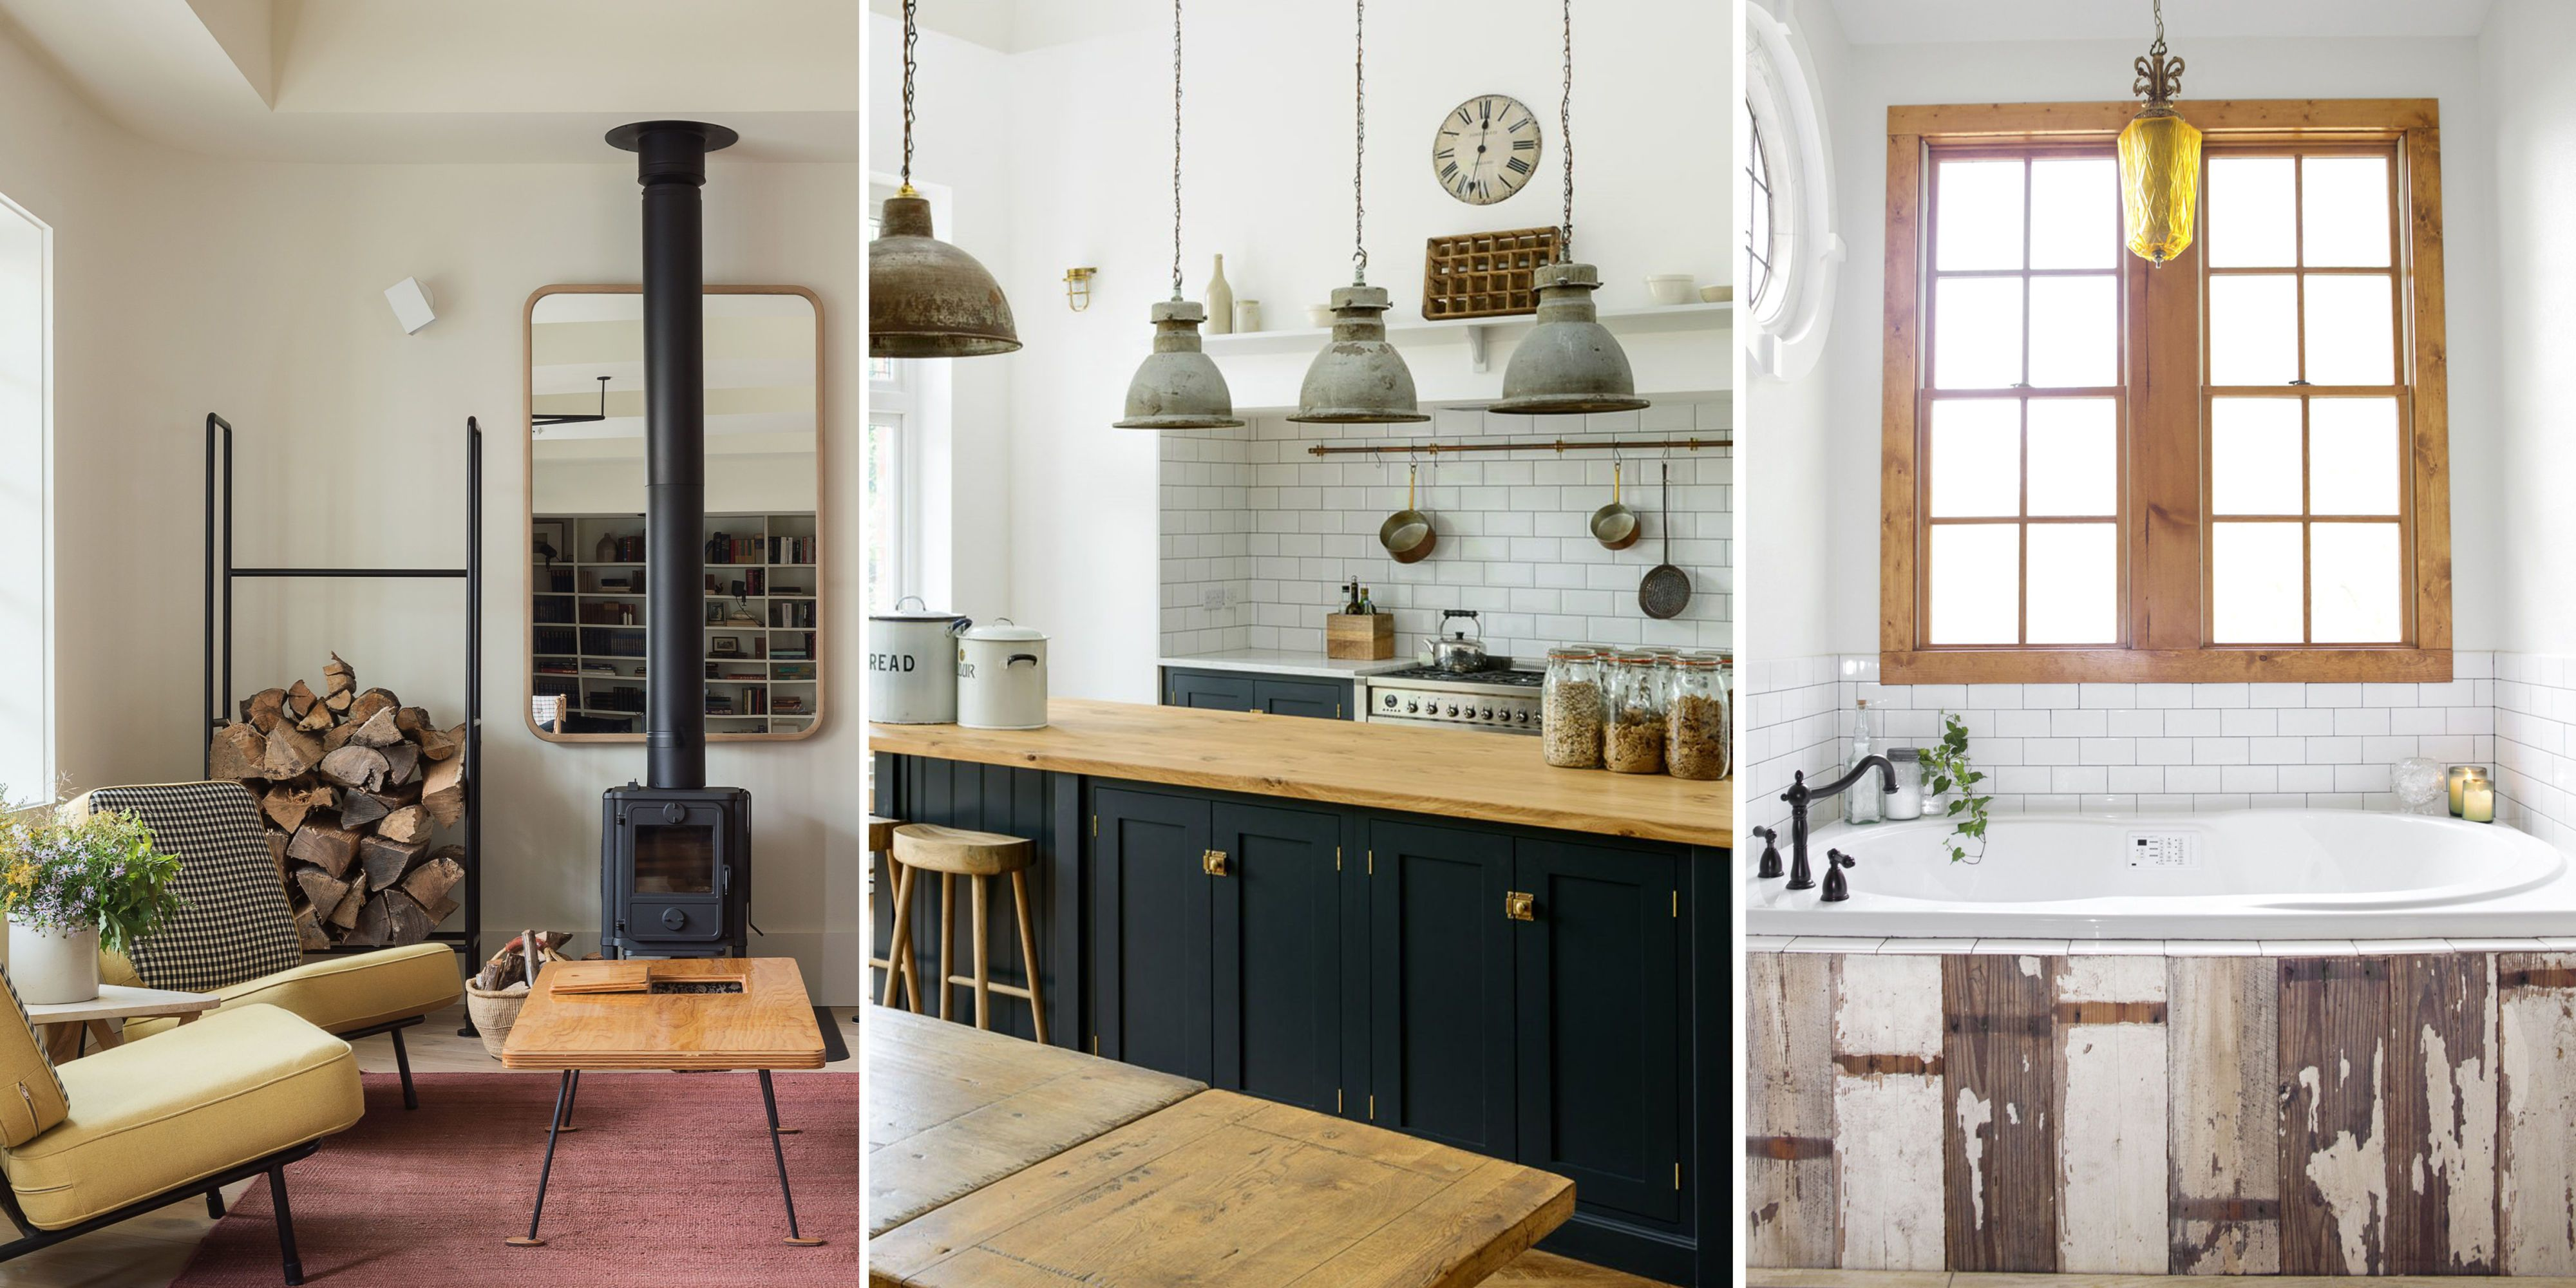 Country rustic decor images